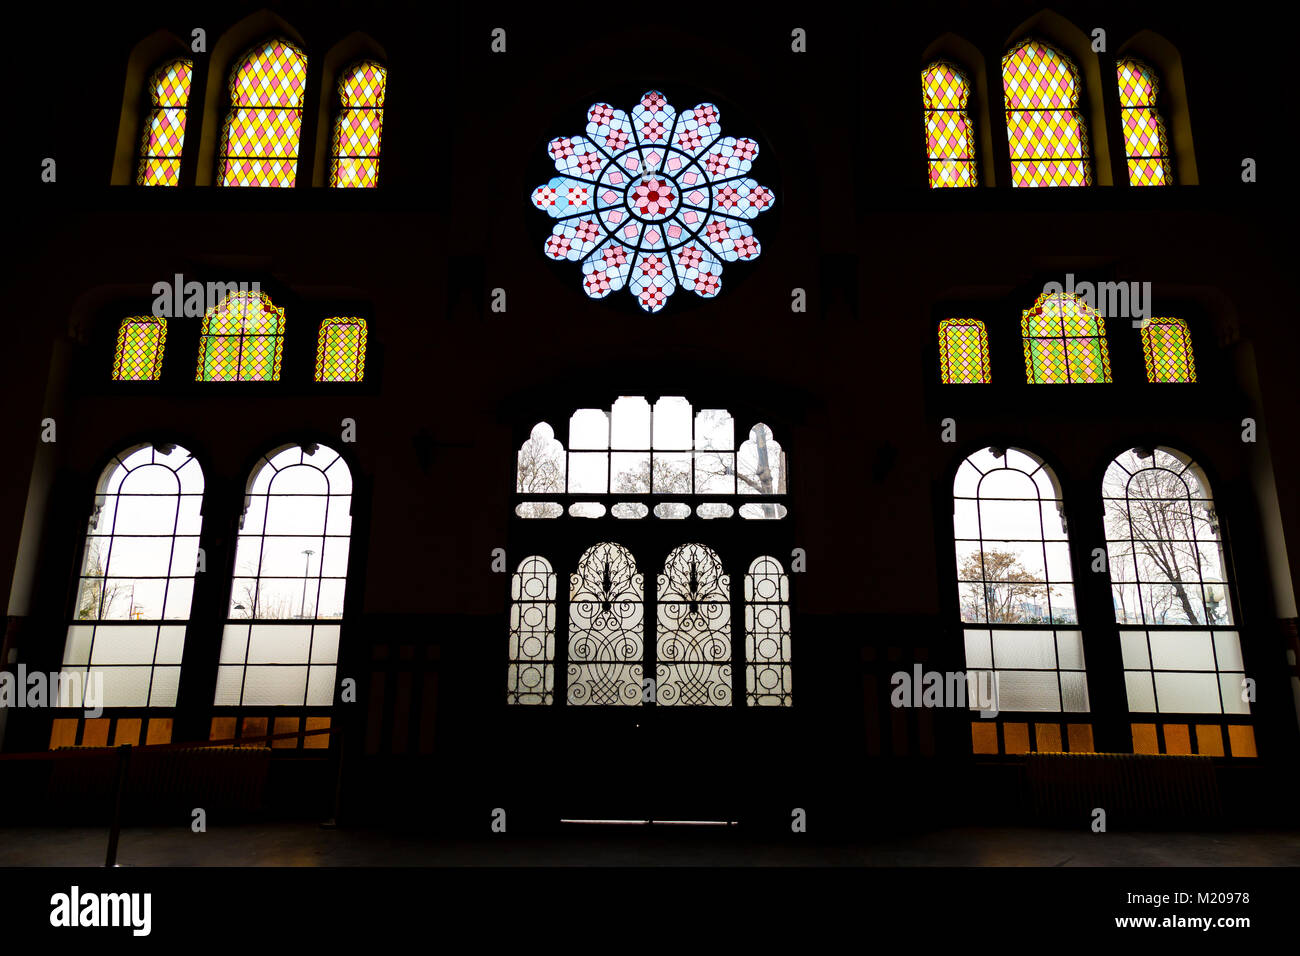 Istanbul, Turkey; January 24, 2015: Interior of Sirkeci Train station with reverse light - Stock Image